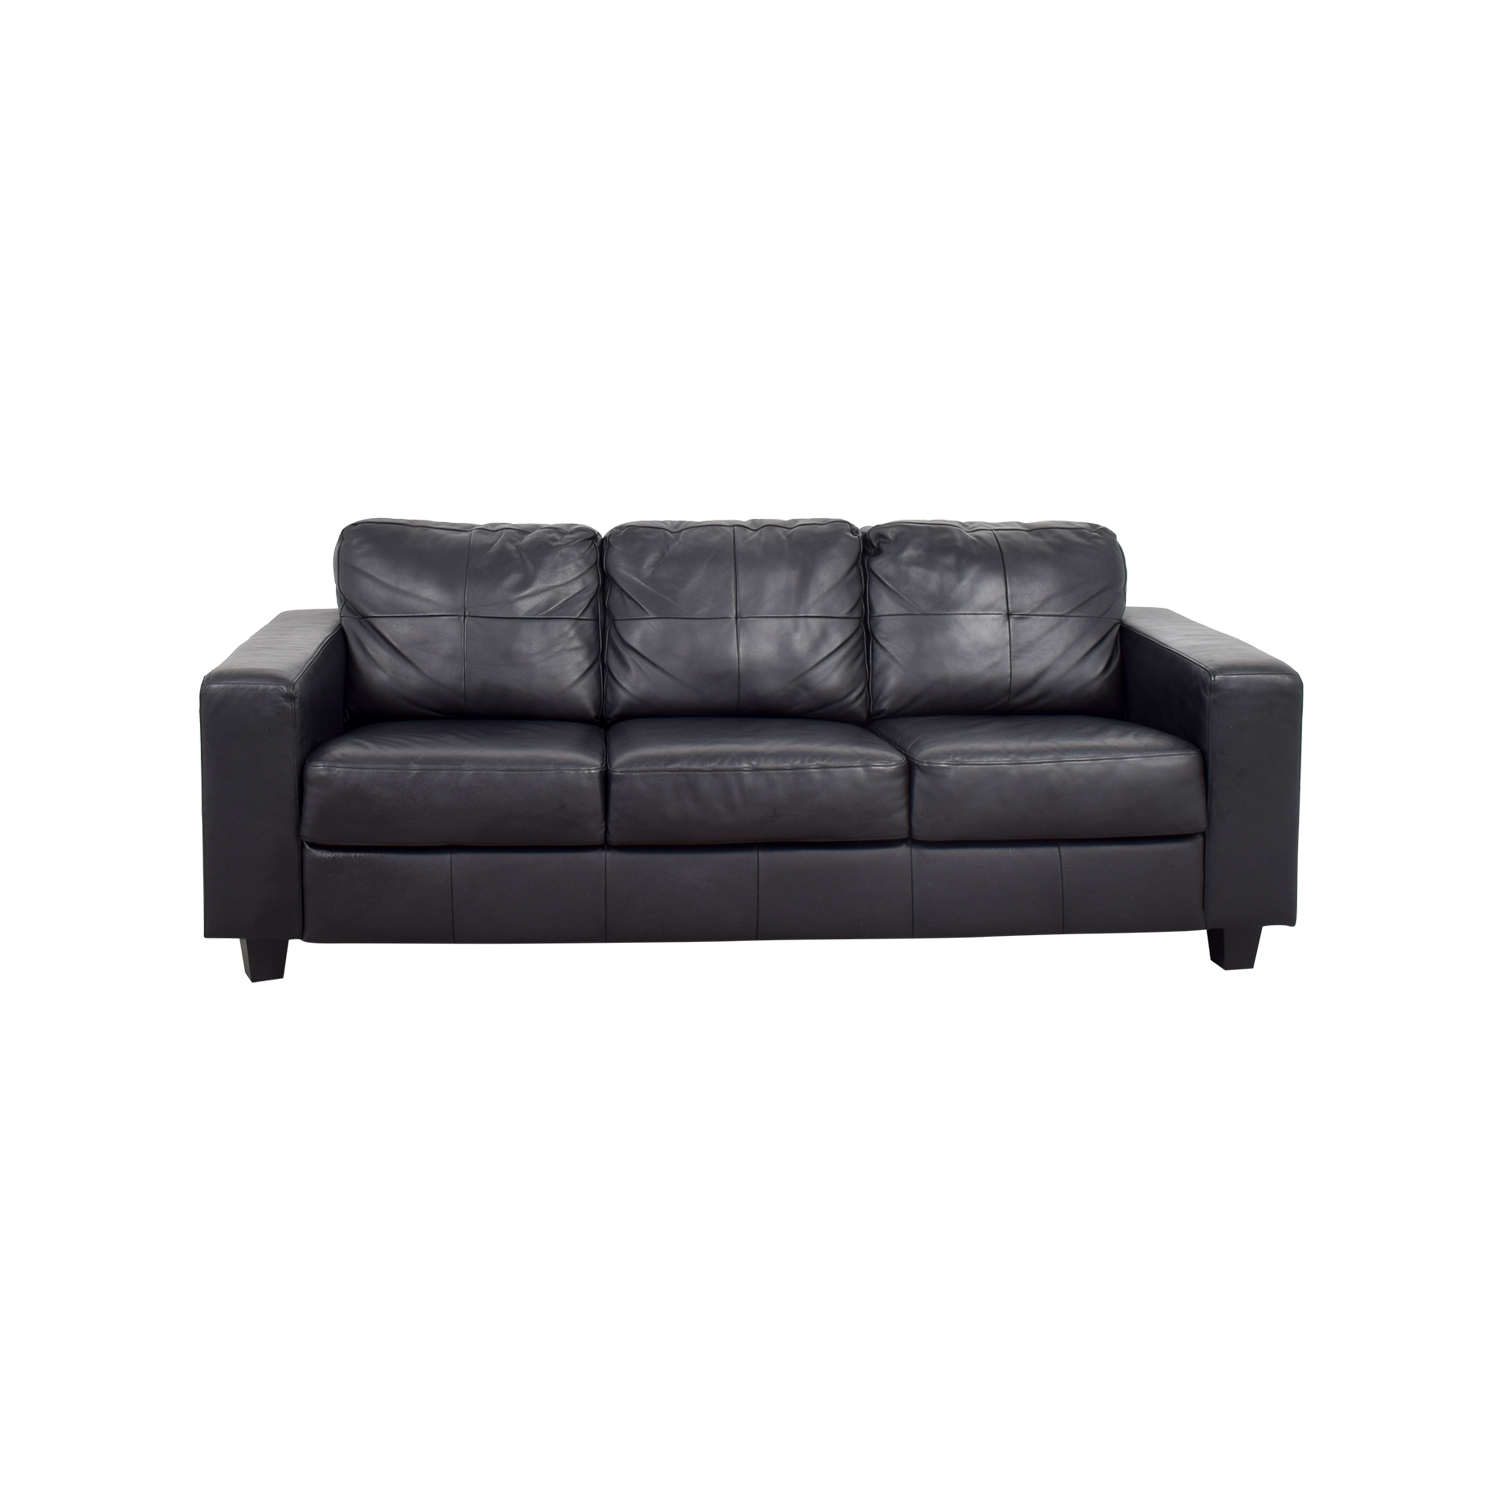 instyle sofas london road glasgow mah jong modular sofa preis ikea black leather 44 off skogaby